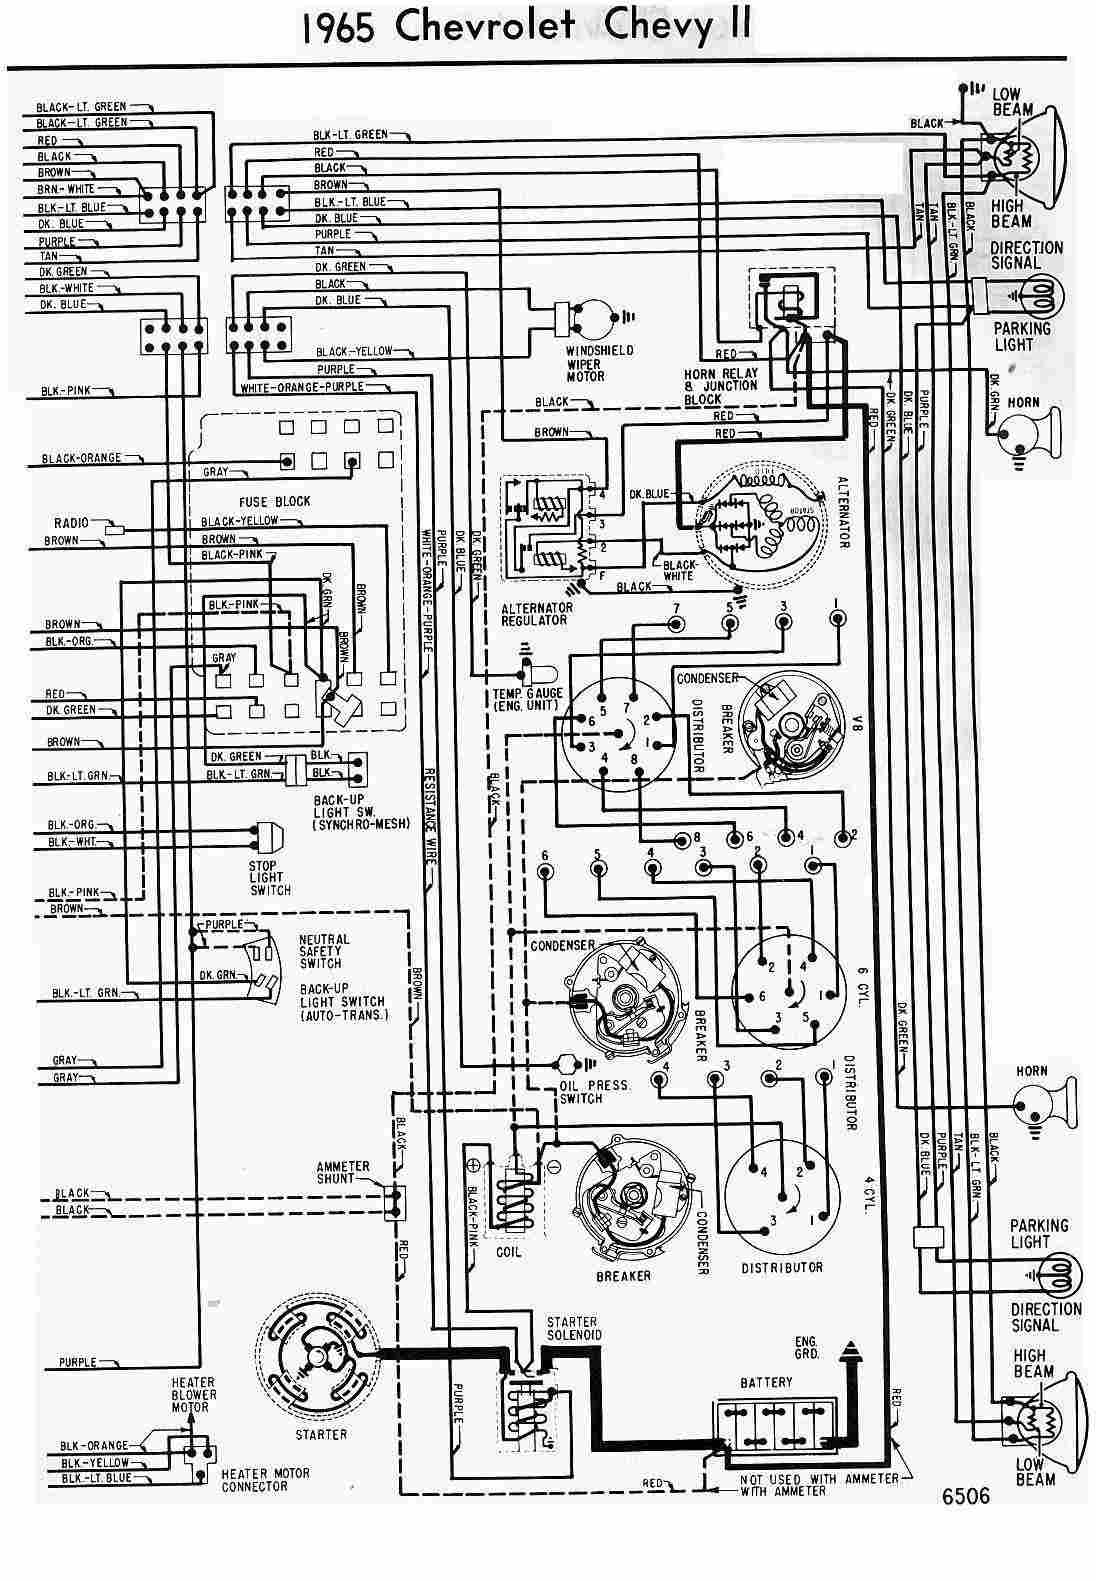 hight resolution of 1970 camaro wiring diagram as well chevy wiring diagrams scematic 1979 chevy camaro wiring diagram free 1979 camaro wiring diagrams